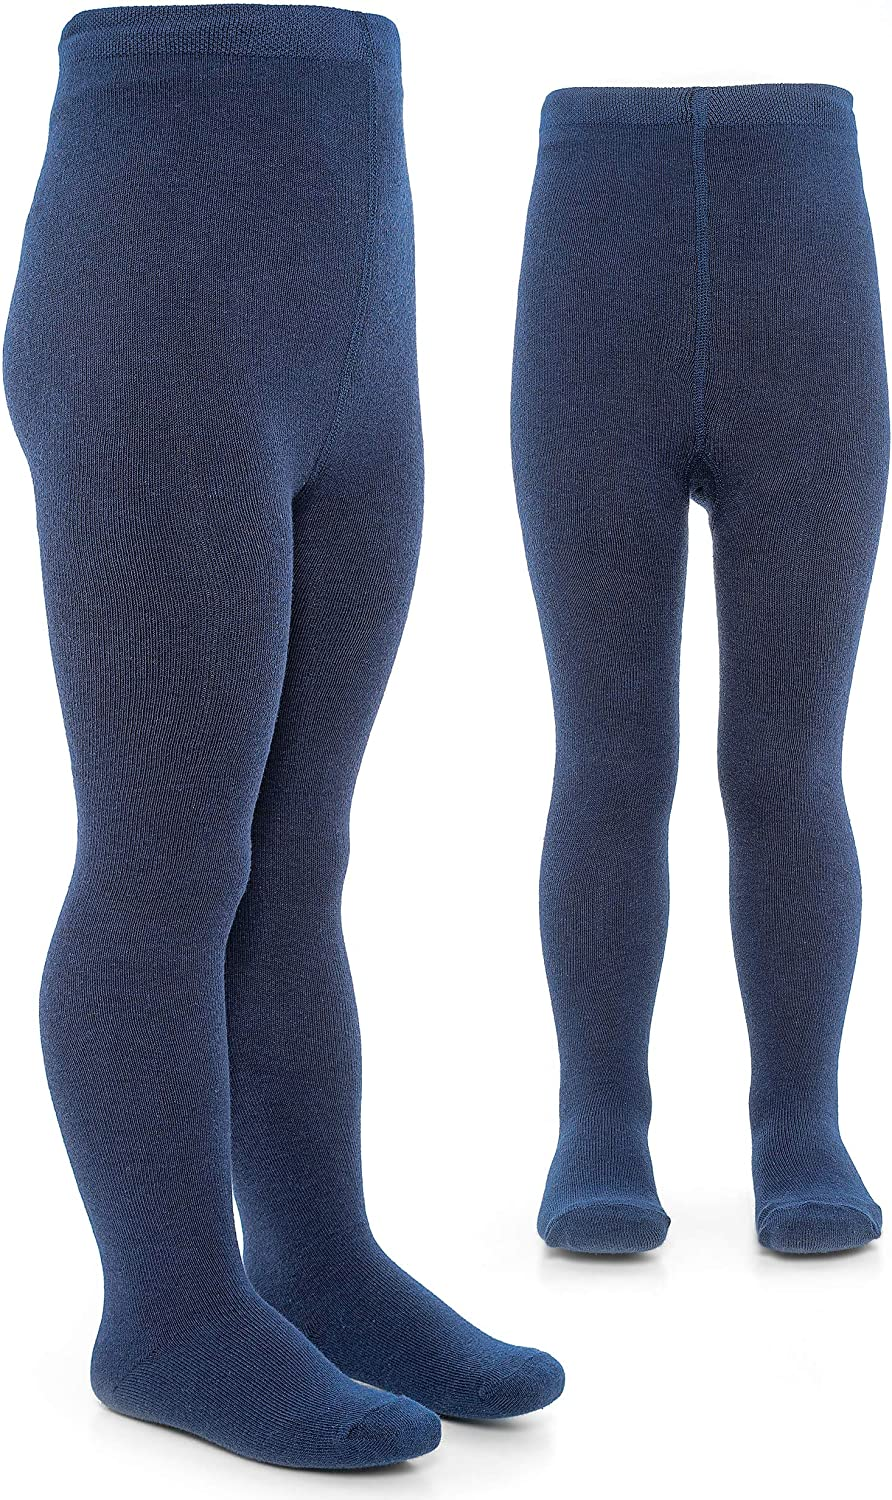 Childrens Tights with High Navy Blue 75/% Cotton Broad Waistband LaLoona Baby Tights 2 pairs